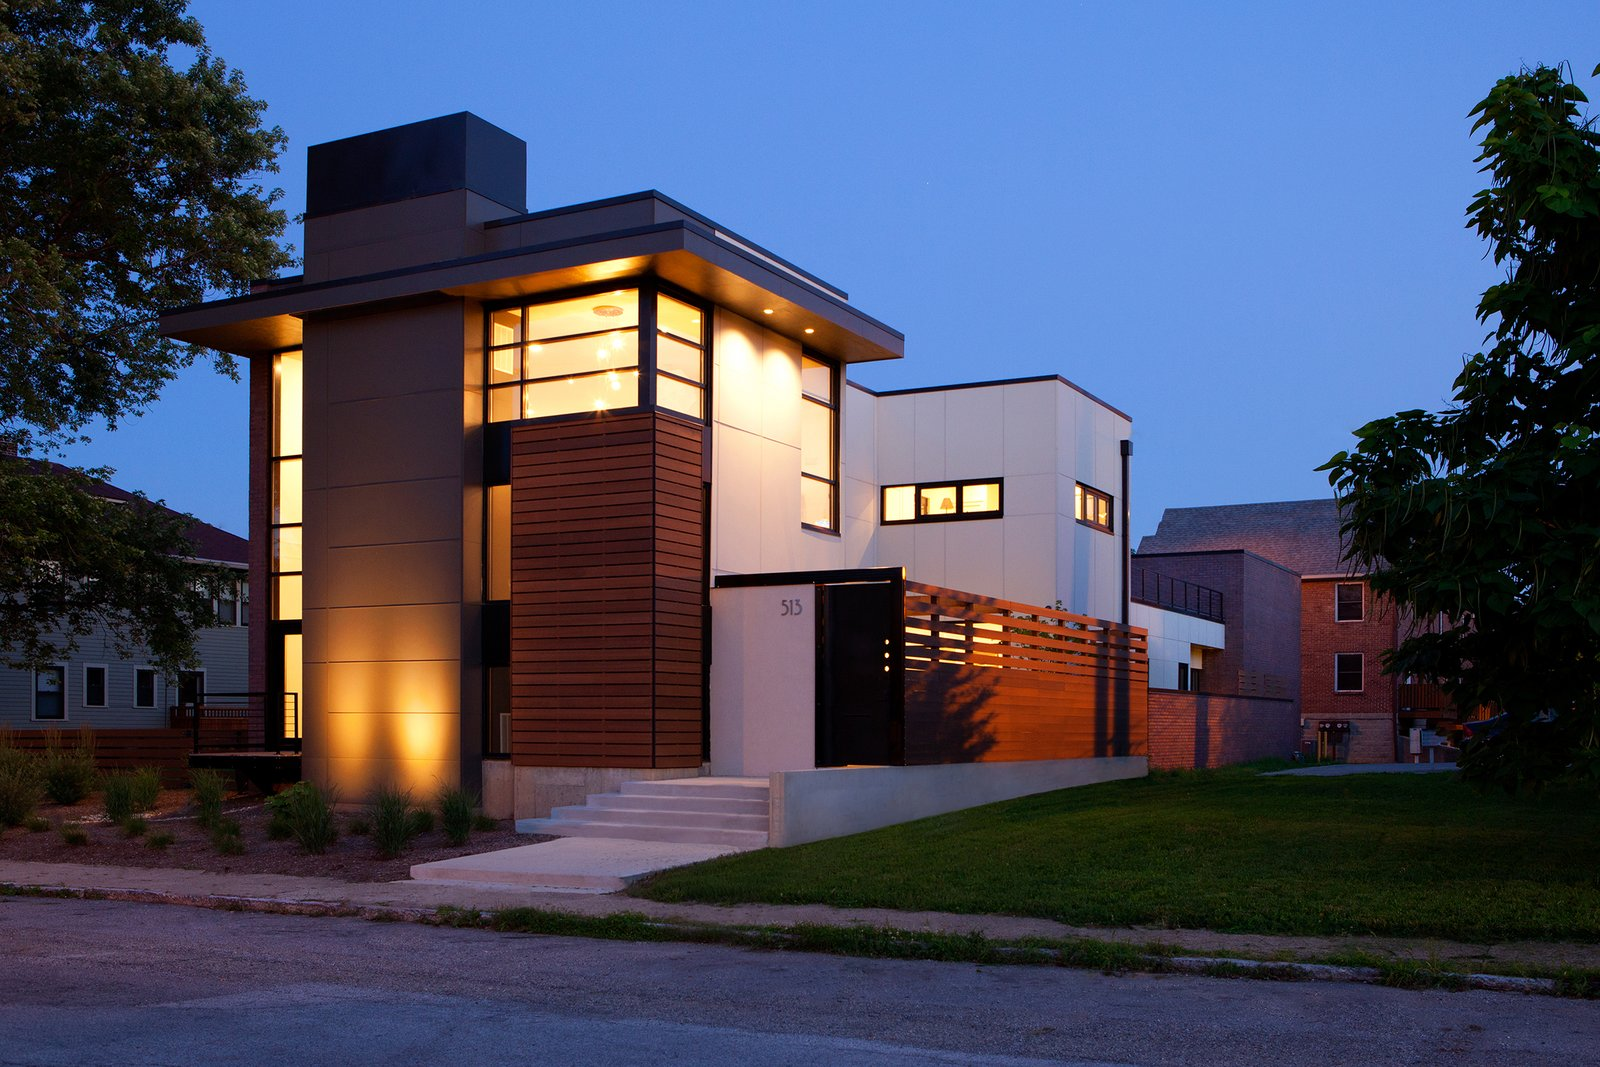 The design provides a layer of privacy for the homeowners, while the solid massing peels away to large expanses of glazing, framing intended view sheds both inward and outward. Along with its verticality, the home pulls key horizontal elements from the established neighborhood rhythm, specifically the eaves and elevated floor lines.